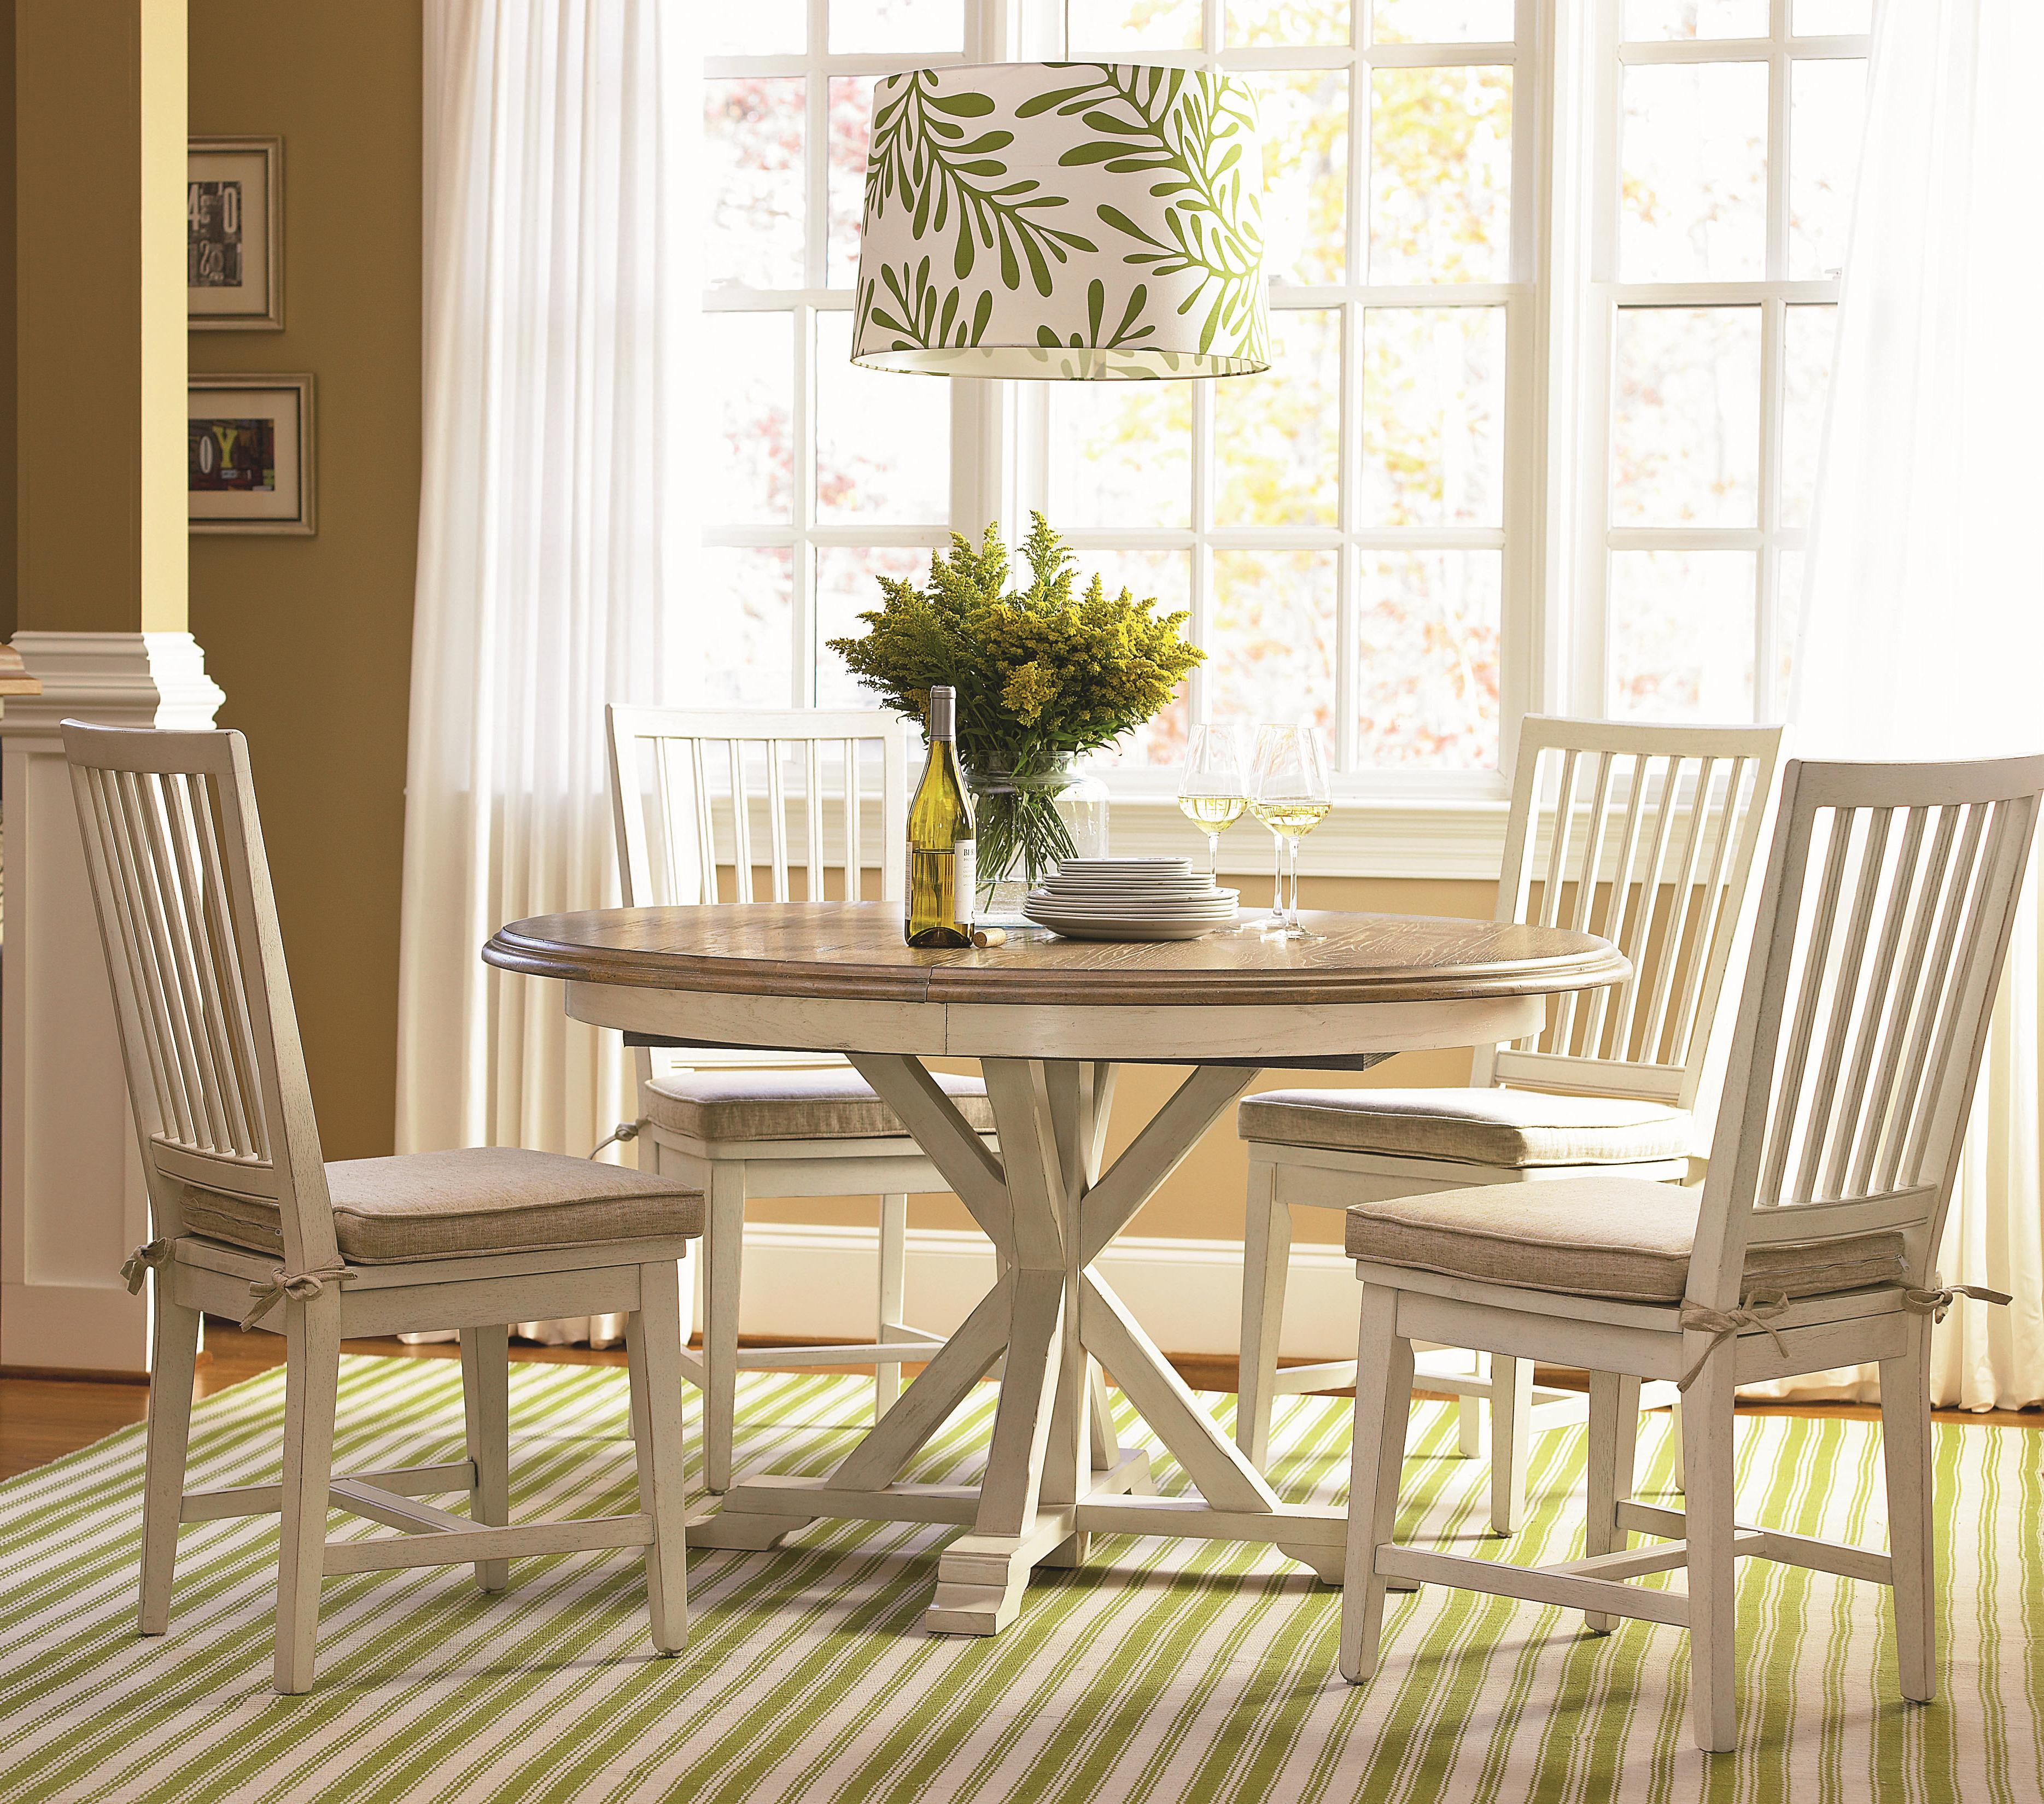 Universal Great Rooms 5 Piece Dining Set with Slat Back  - Item Number: 128757+4x32W-RTA